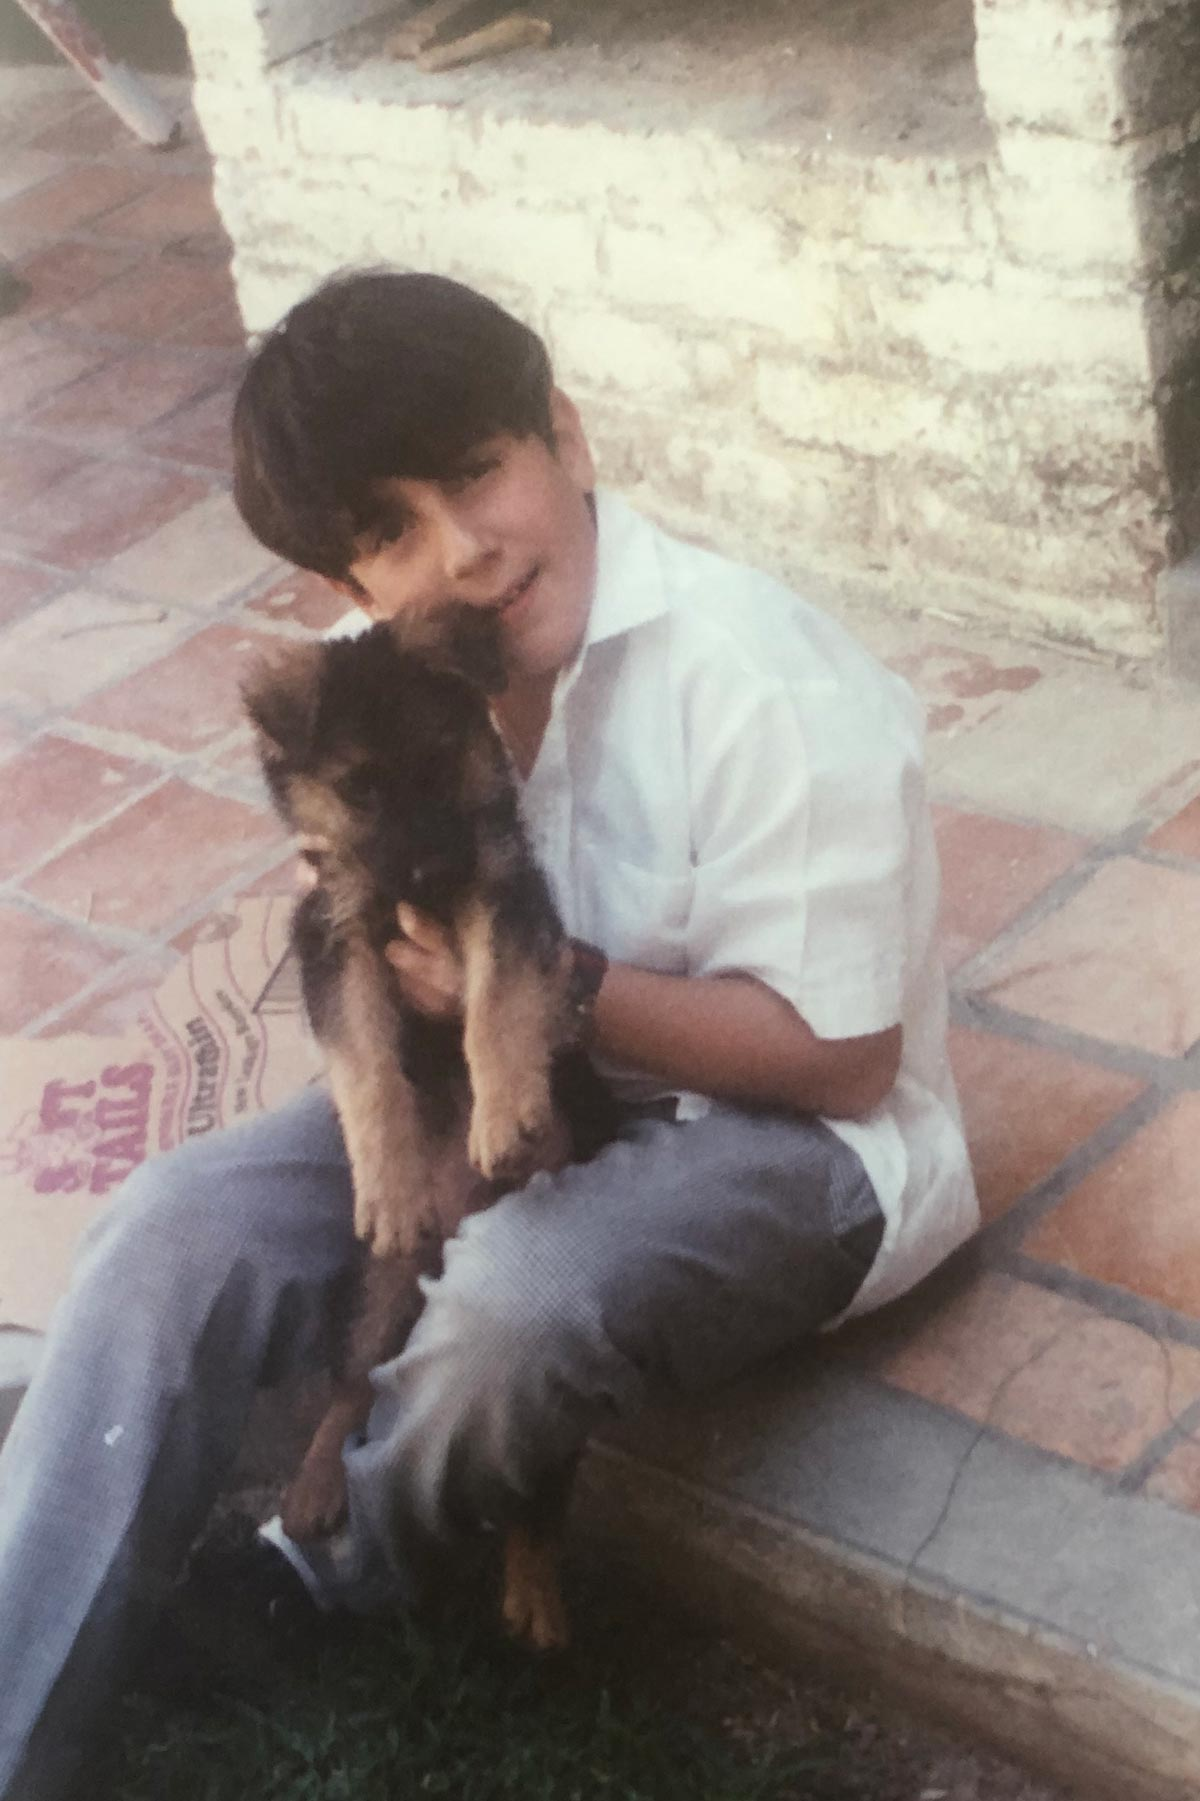 Juan Pablo González hugs a puppy outside on a patio.